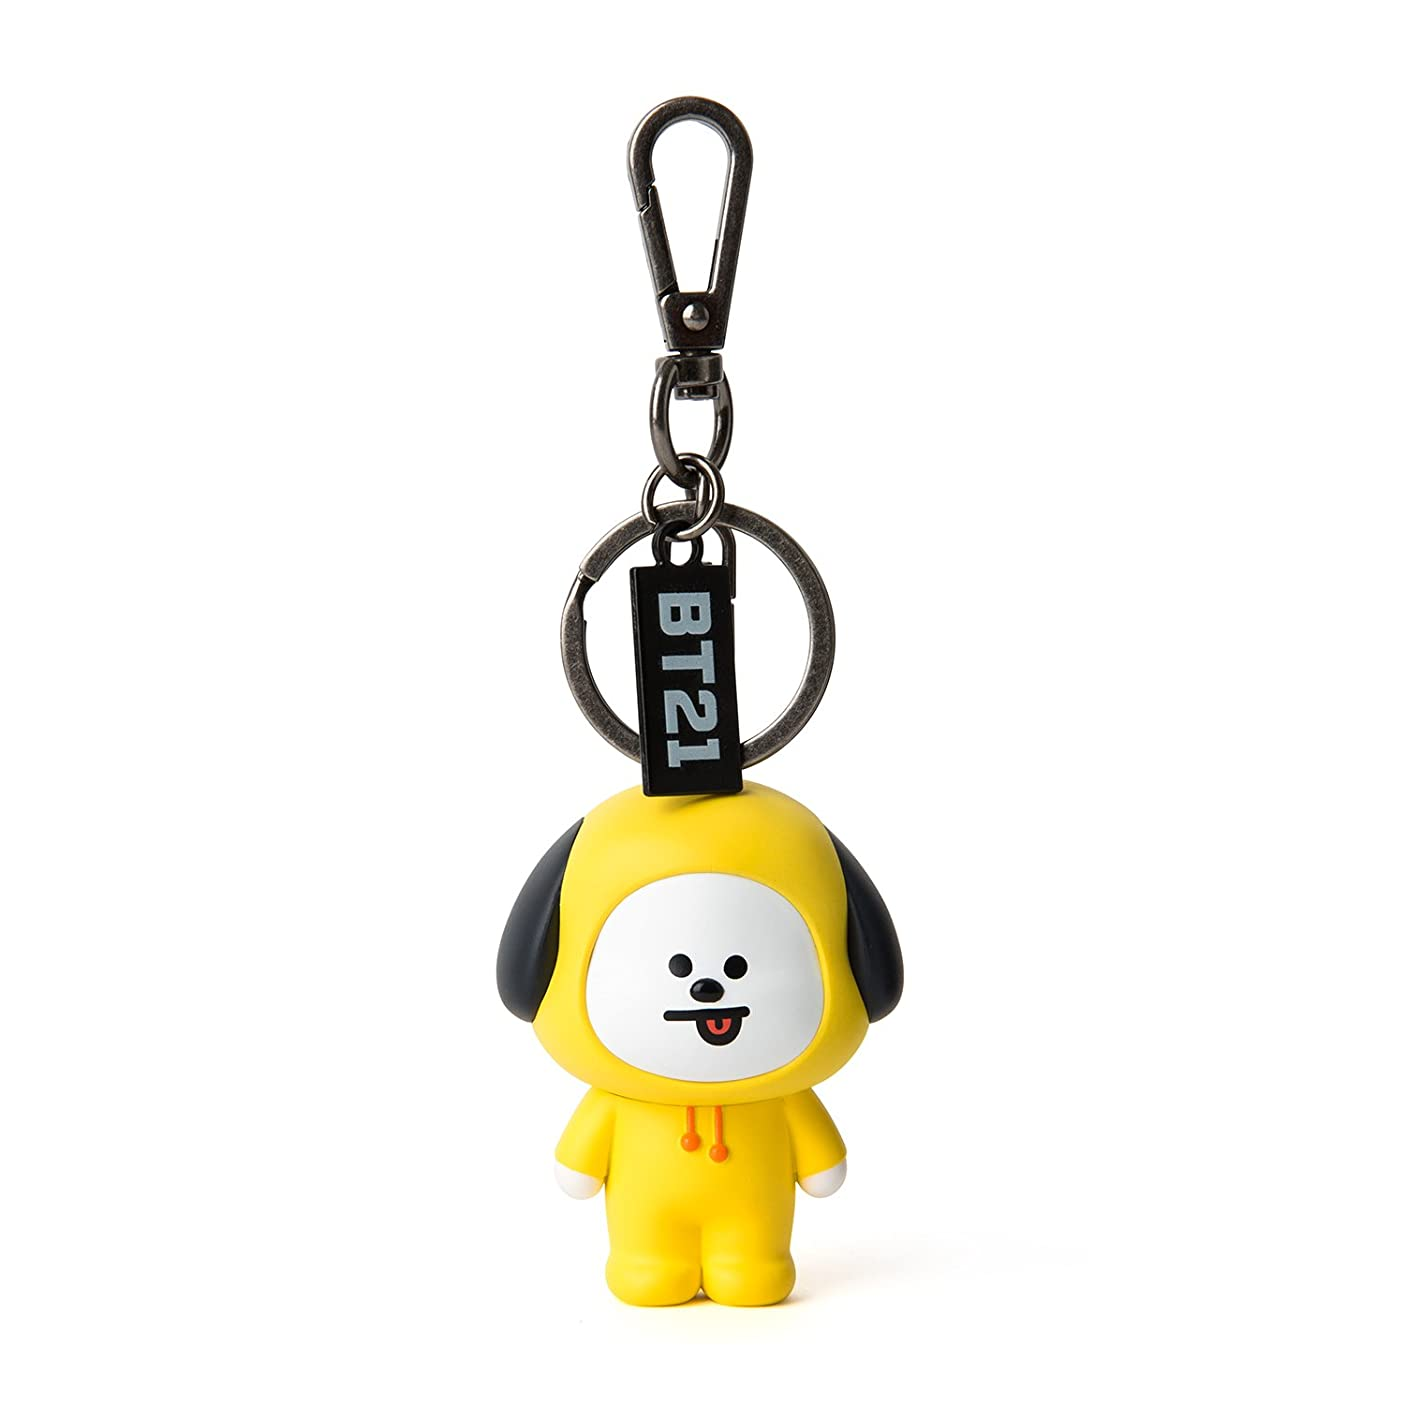 BT21 Official Merchandise by Line Friends - CHIMMY Keychain Ring xnhajpxjfny804